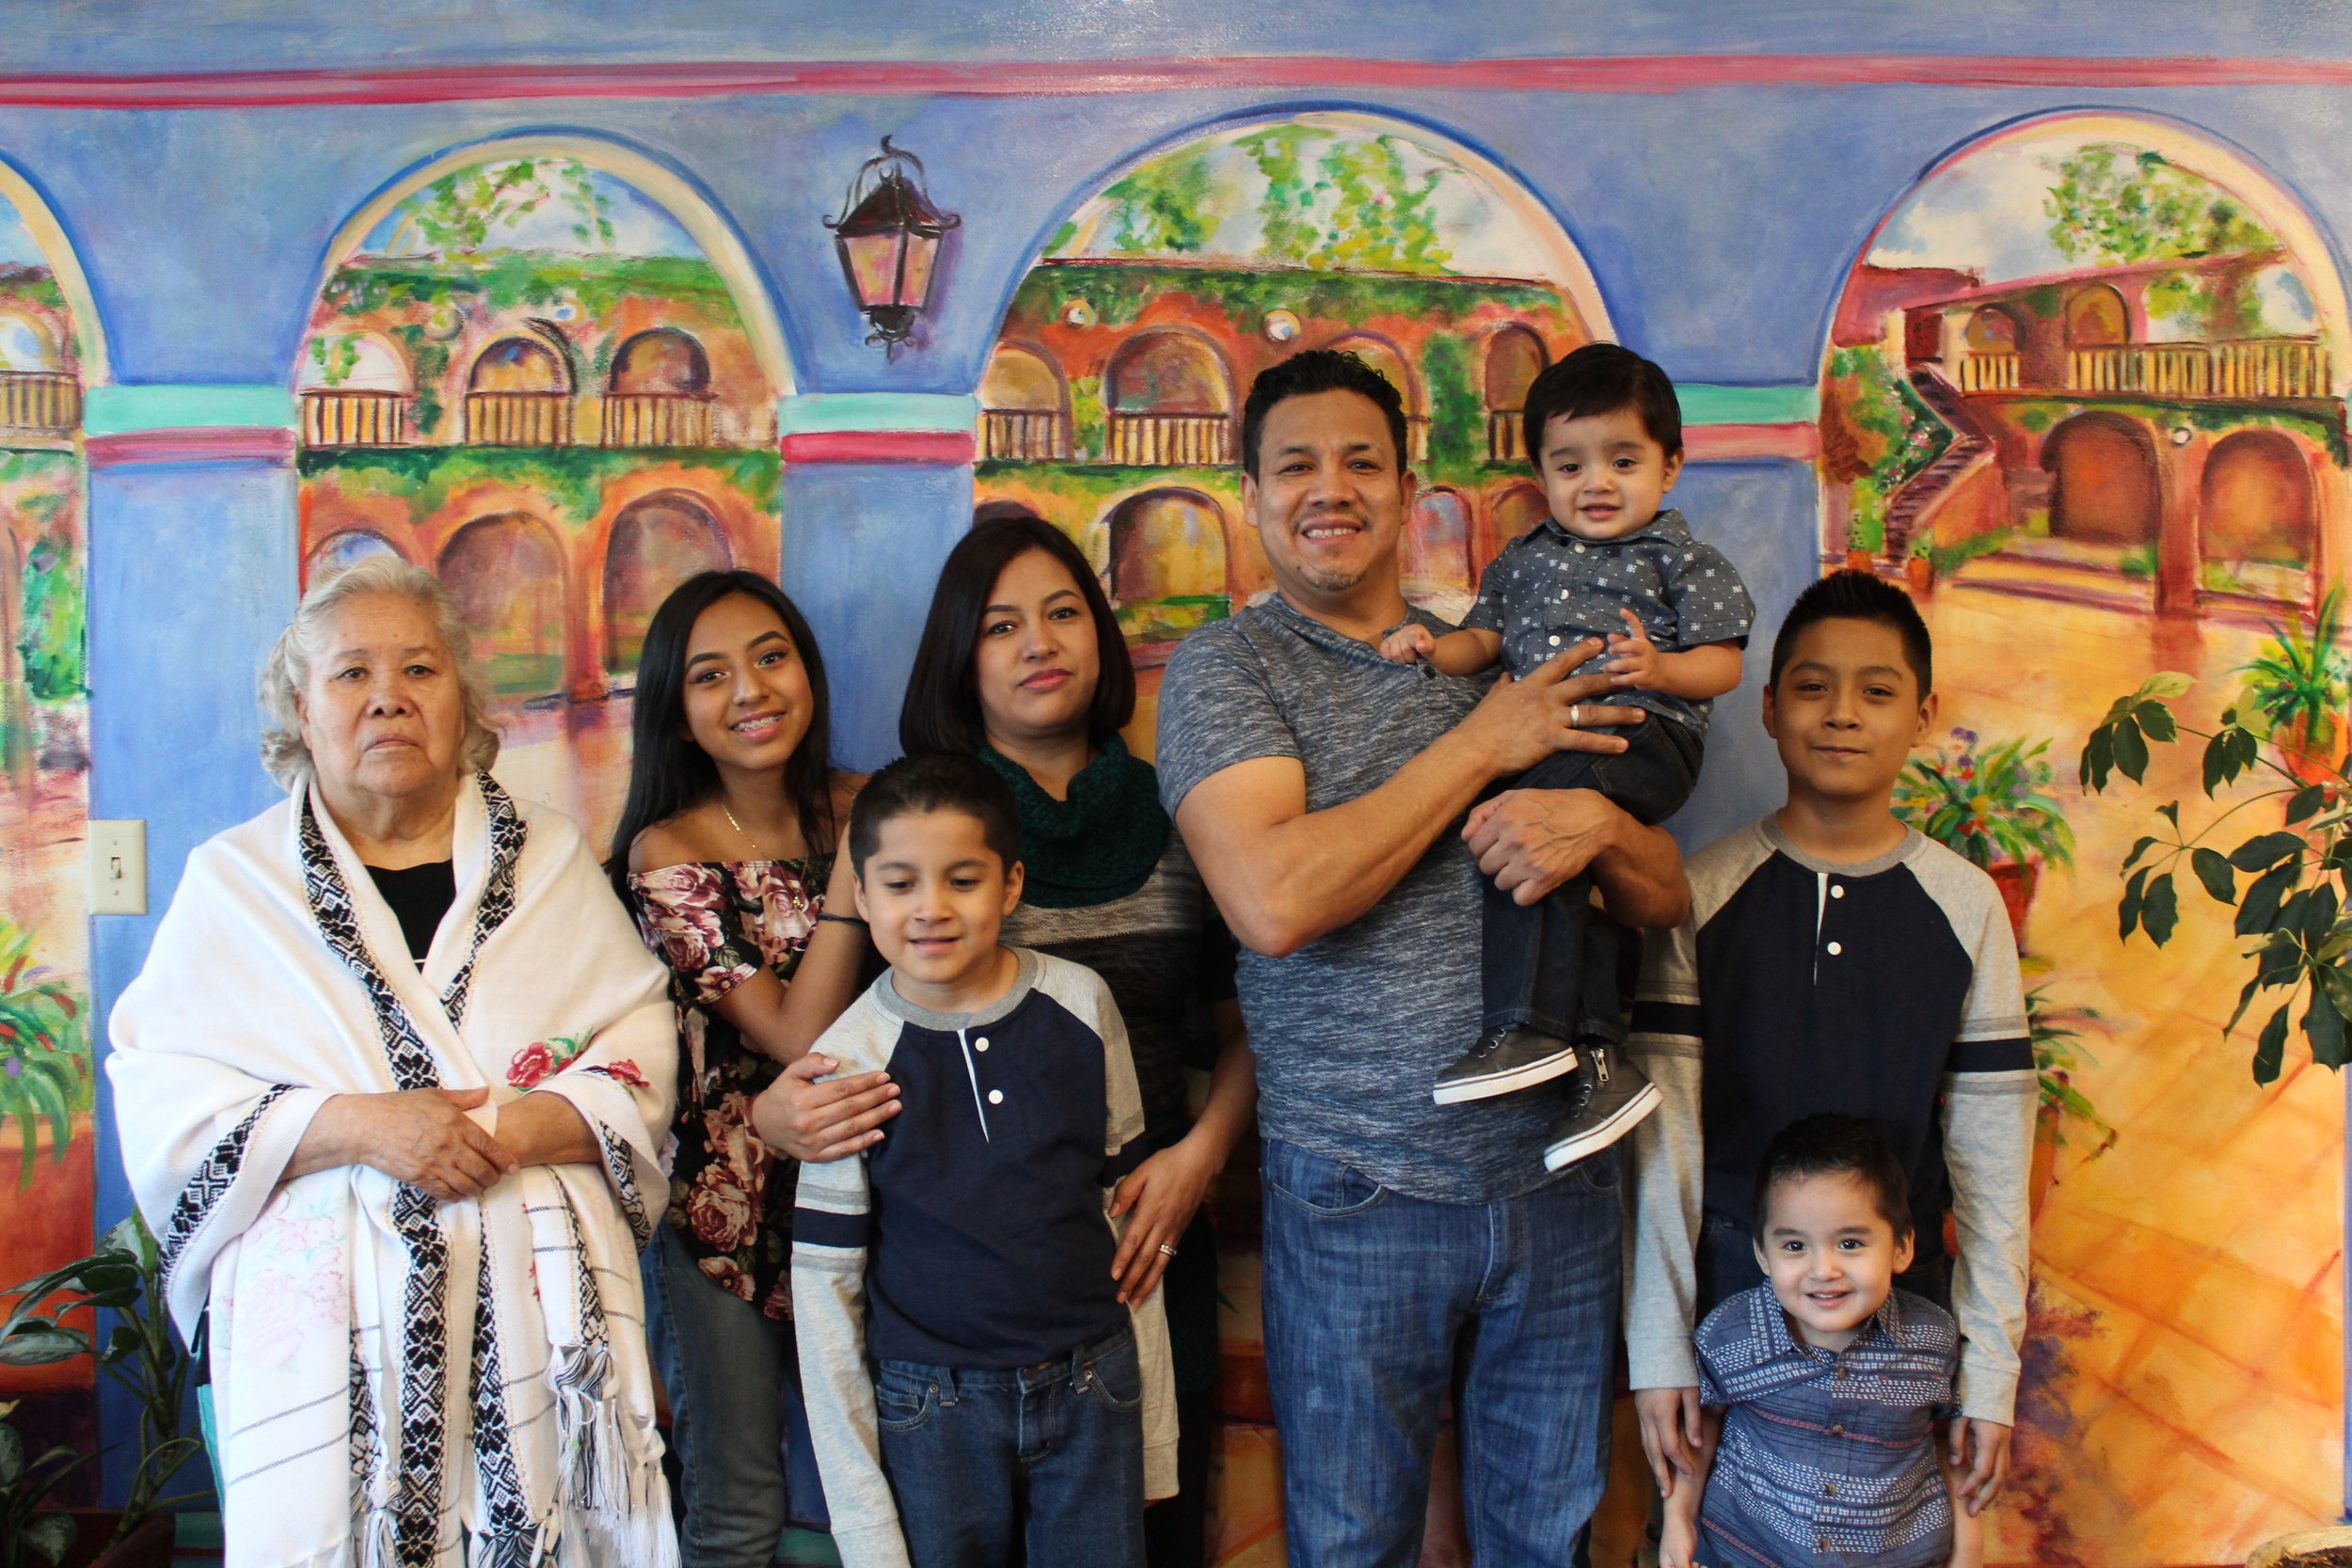 Holistic Programs - Centro Tyrone Guzman serves all ages, from infants to elders, using education, health and wellness as the key strategies to build our community's strength, participation and vitality.